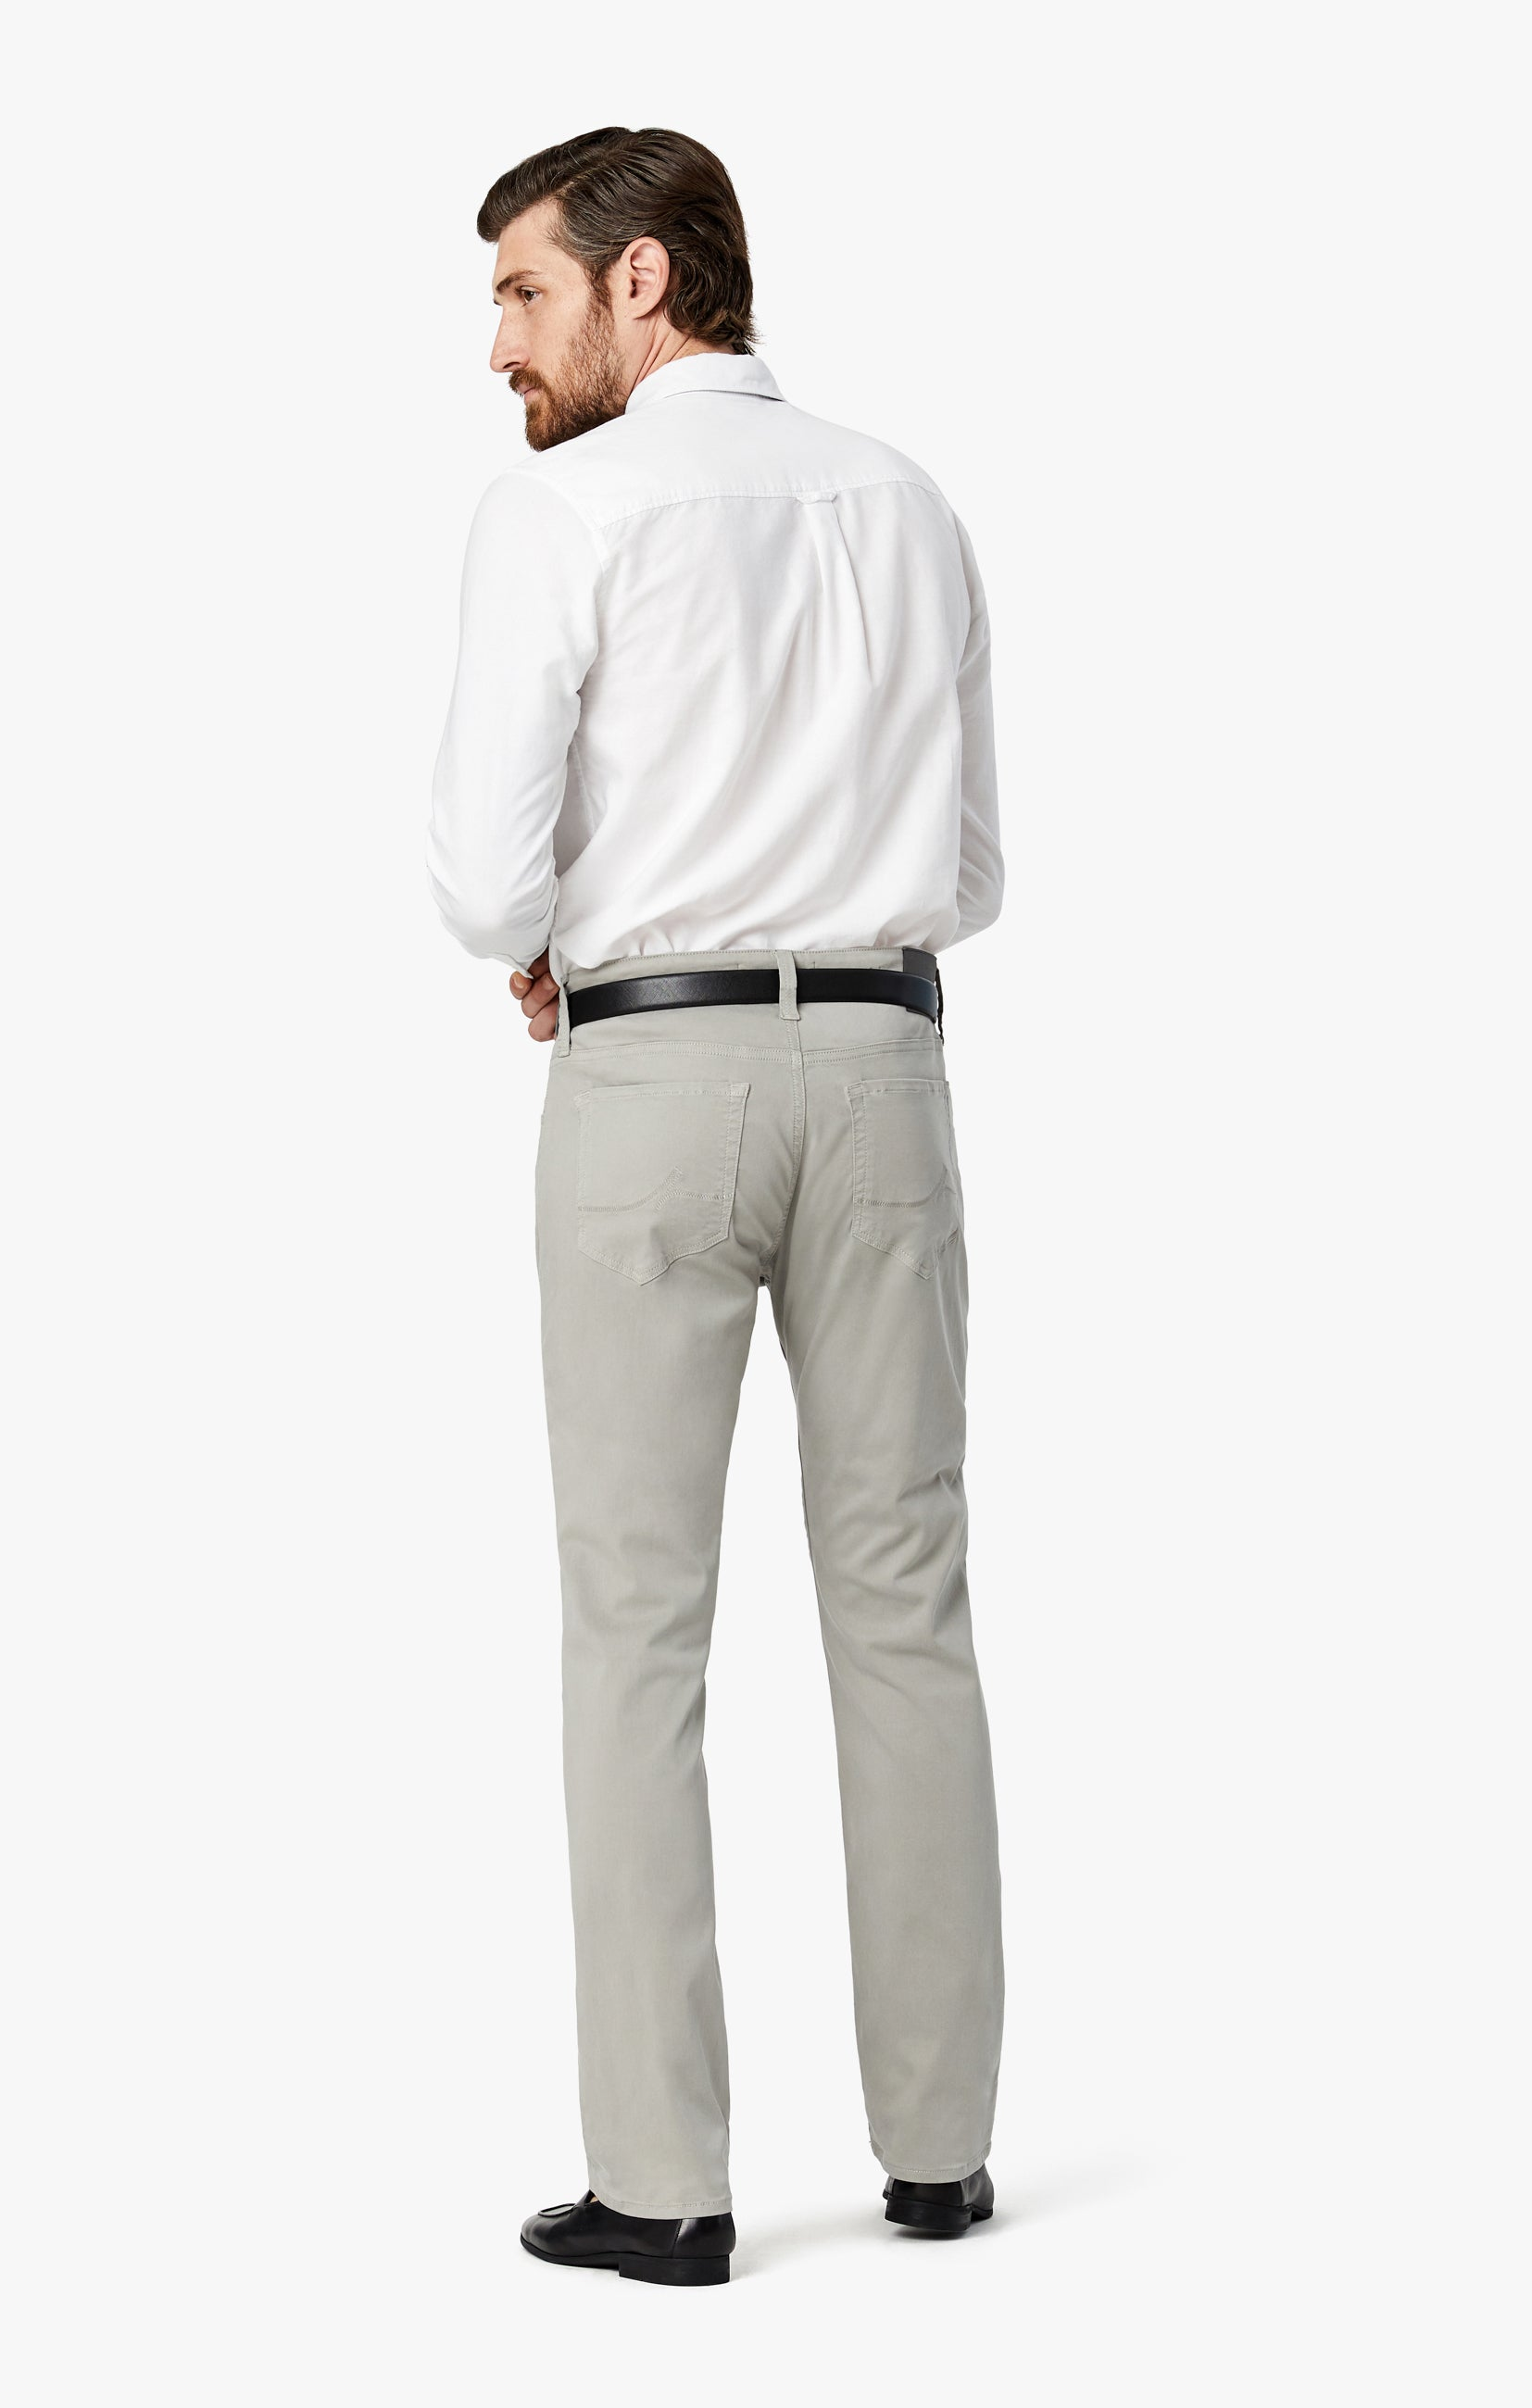 Courage Straight Leg Pants in Grey Twill Image 8